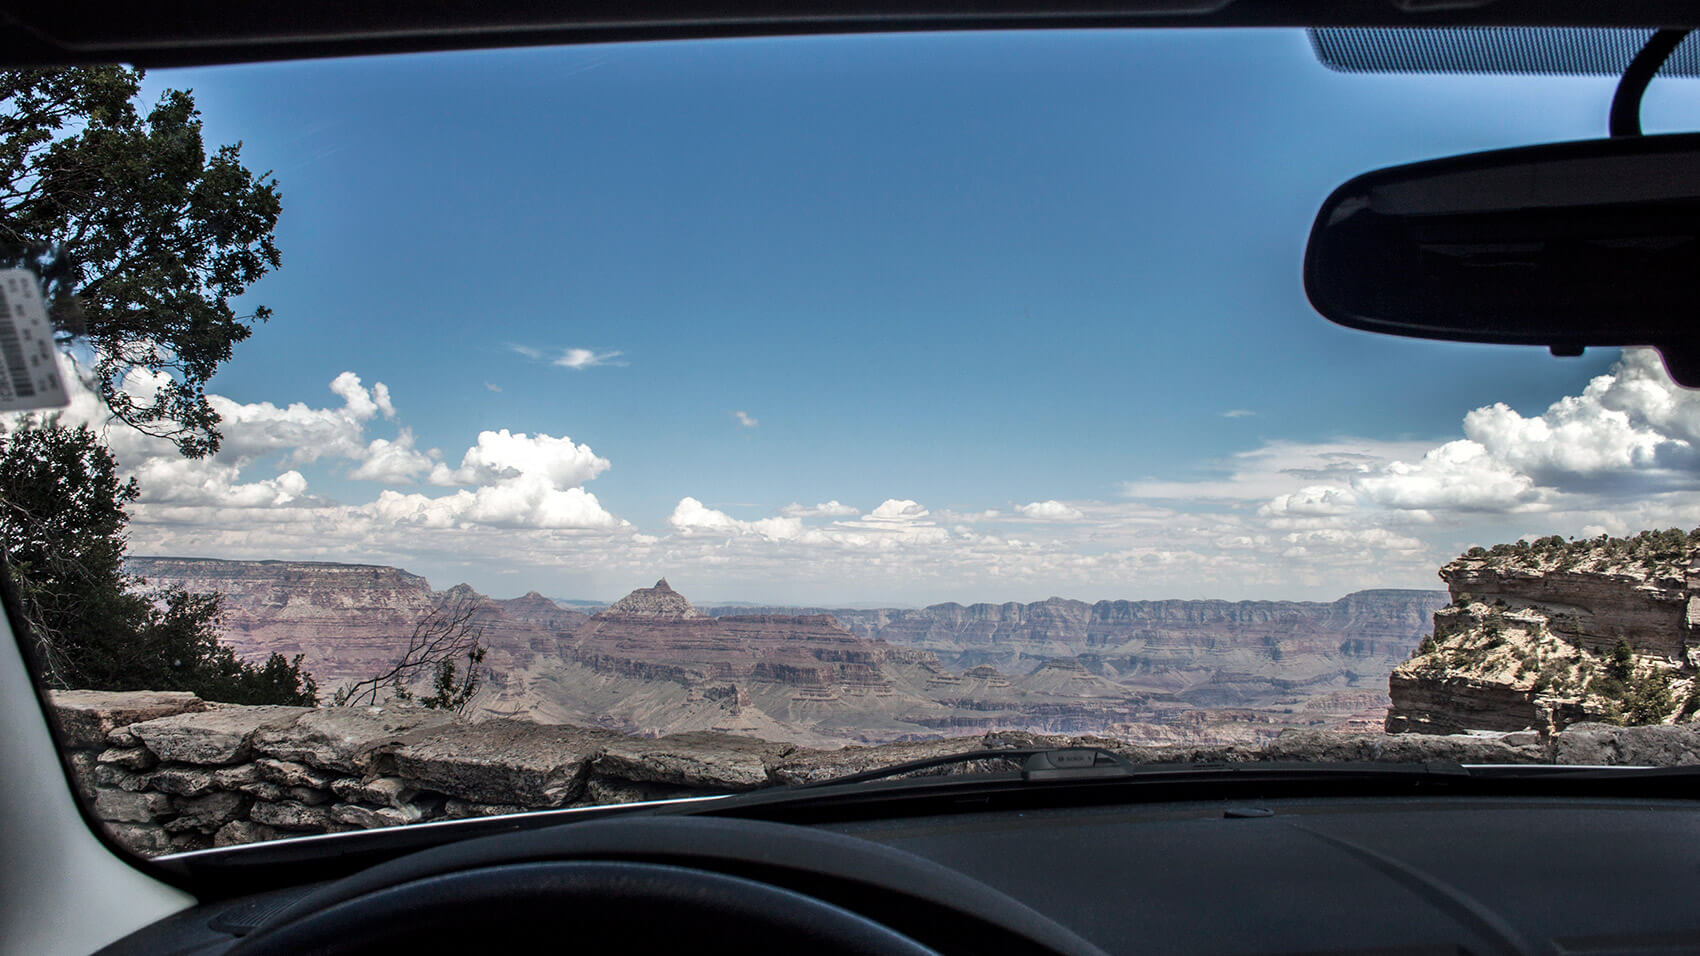 Getting ready to leave the car before facing the breathtaking view.